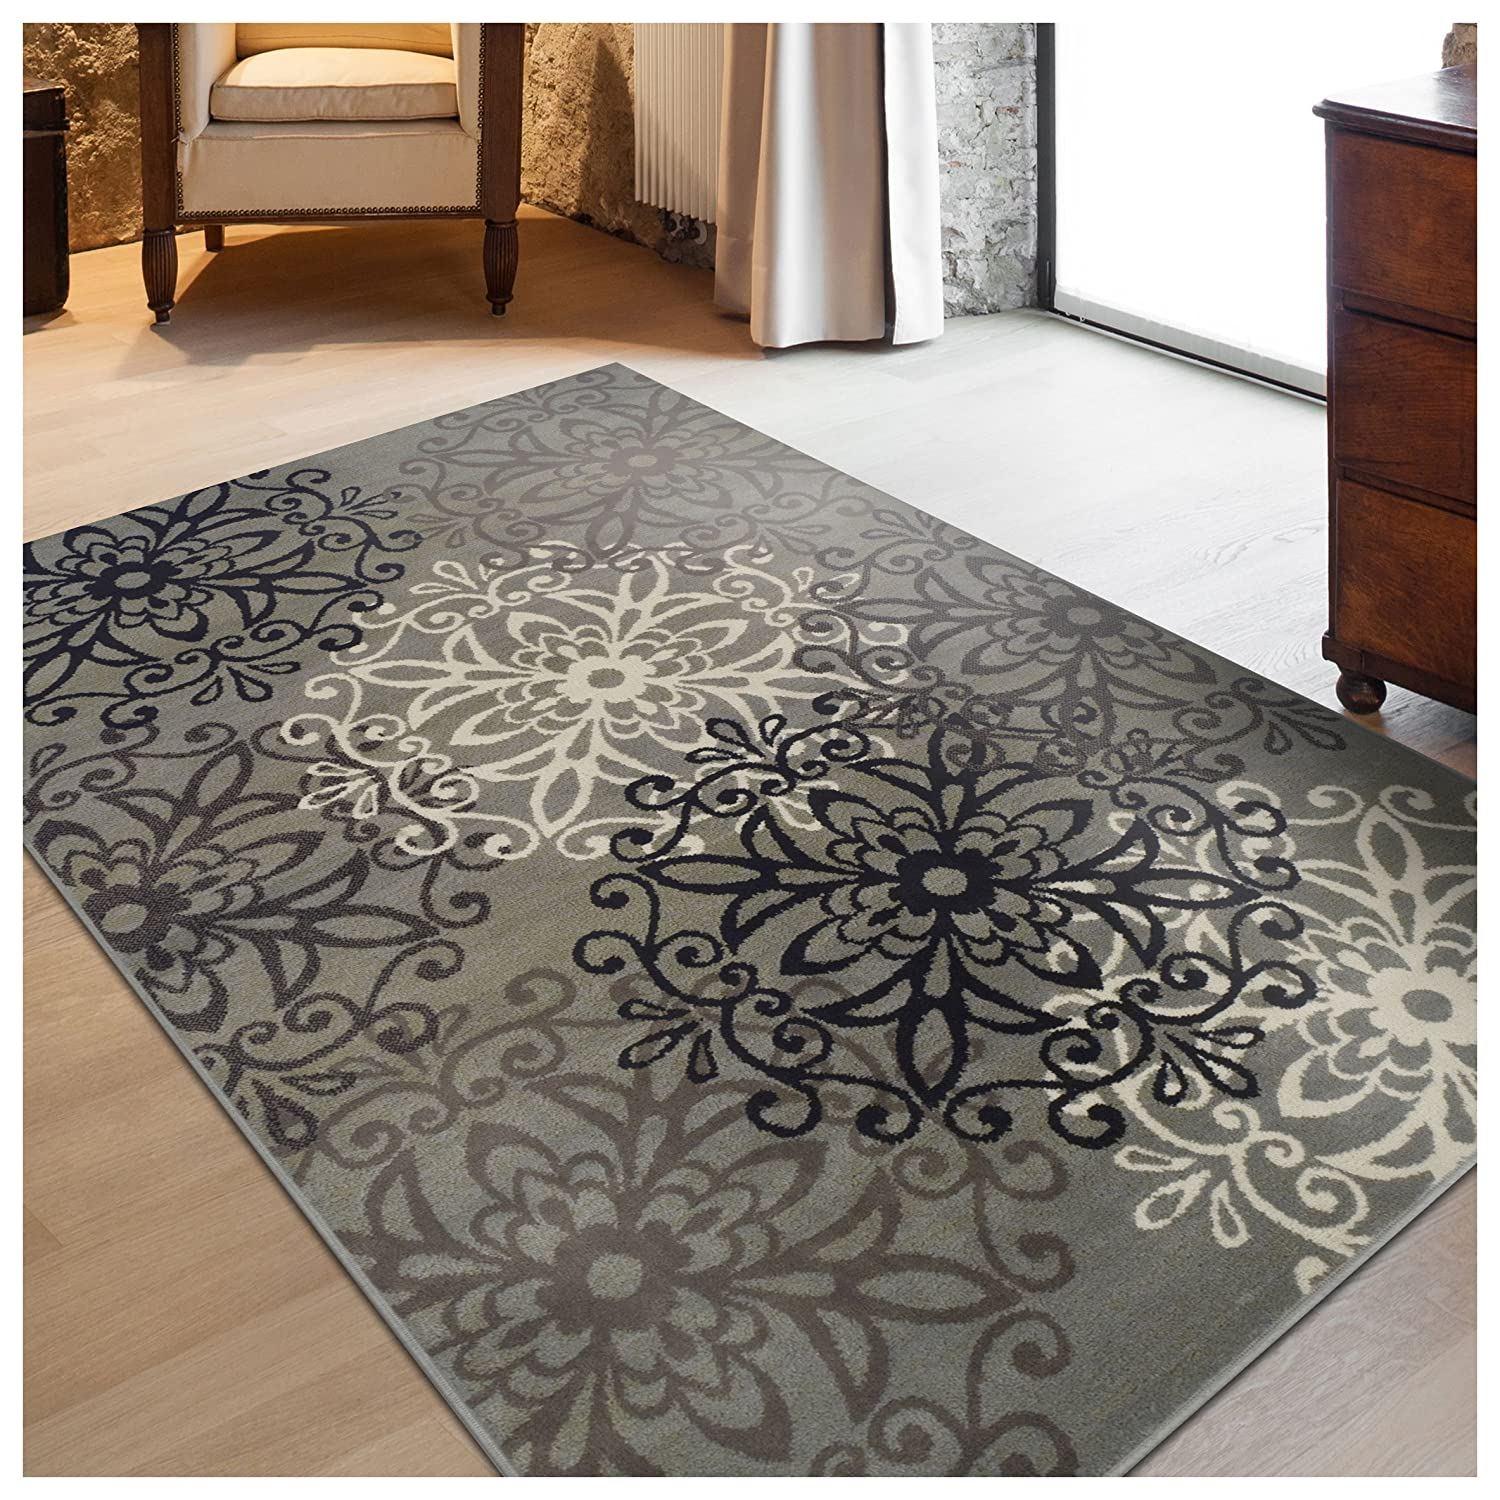 Superior Elegant Leigh Collection Area Rug, 8mm Pile Height with Jute Backing, Chic Contemporary Floral Medallion Pattern, Anti-Static, Water-Repellent Rugs - Beige, 2' x 3' Rug 2' x 3' Rug 2X3RUG-LEIGH